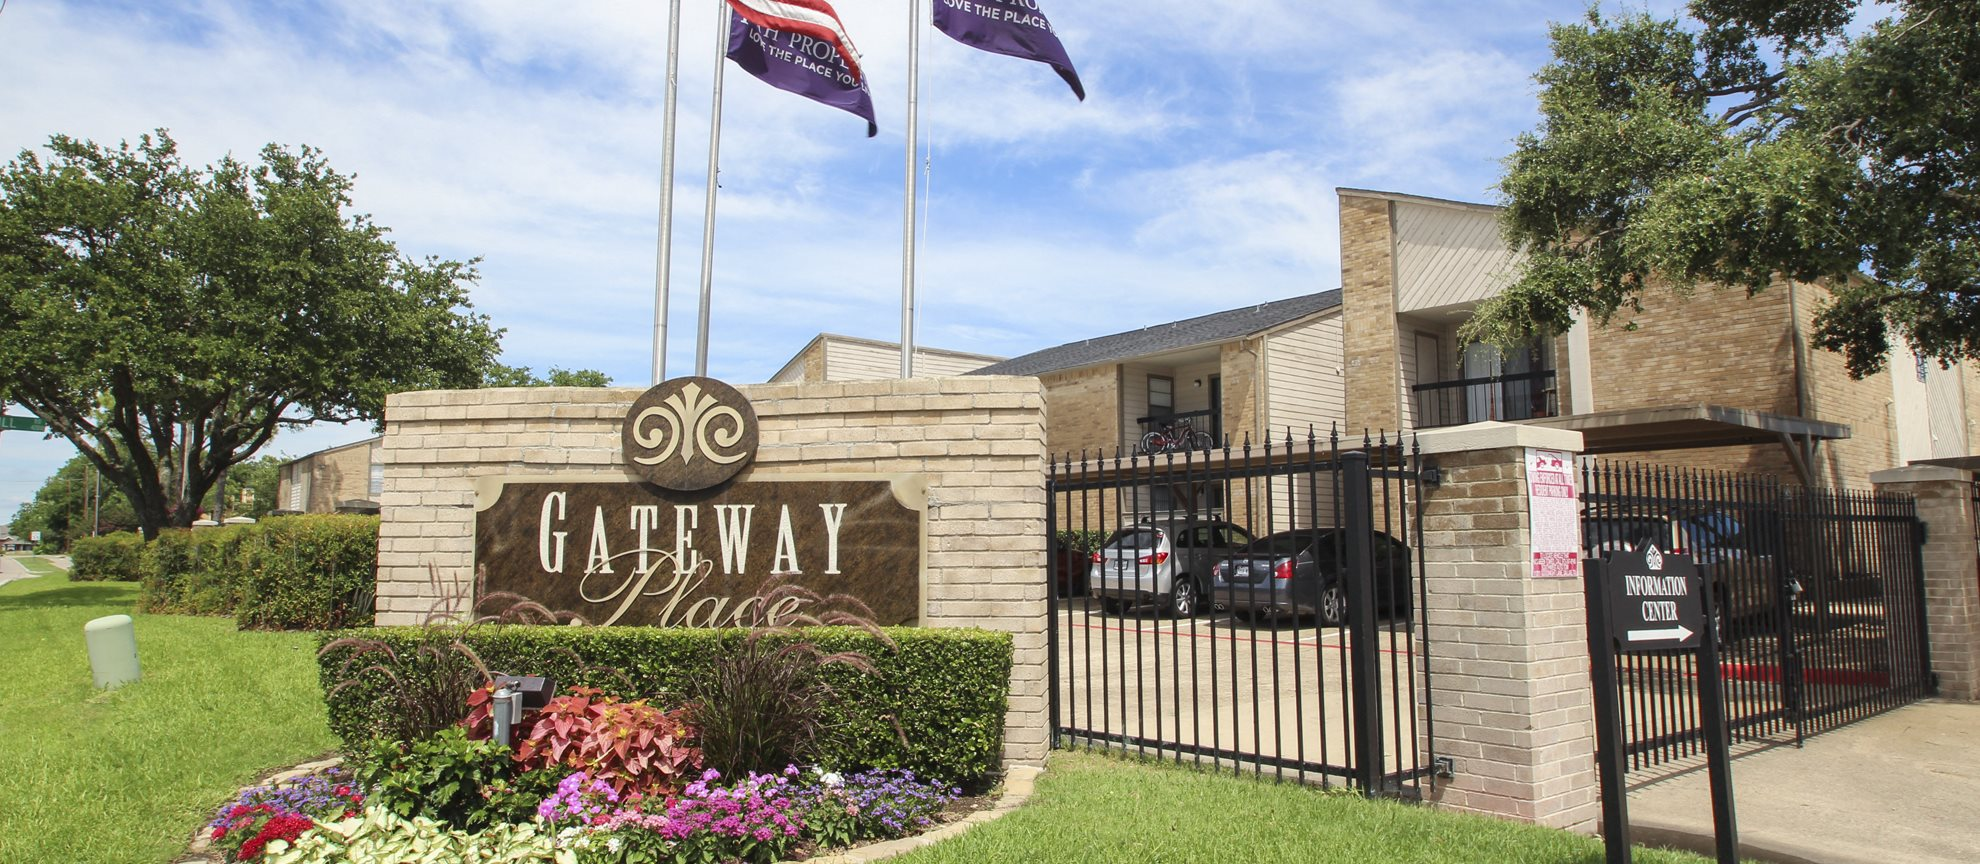 This is a picture of the entrance gate at Gateway Place Apartments in Garland, TX.